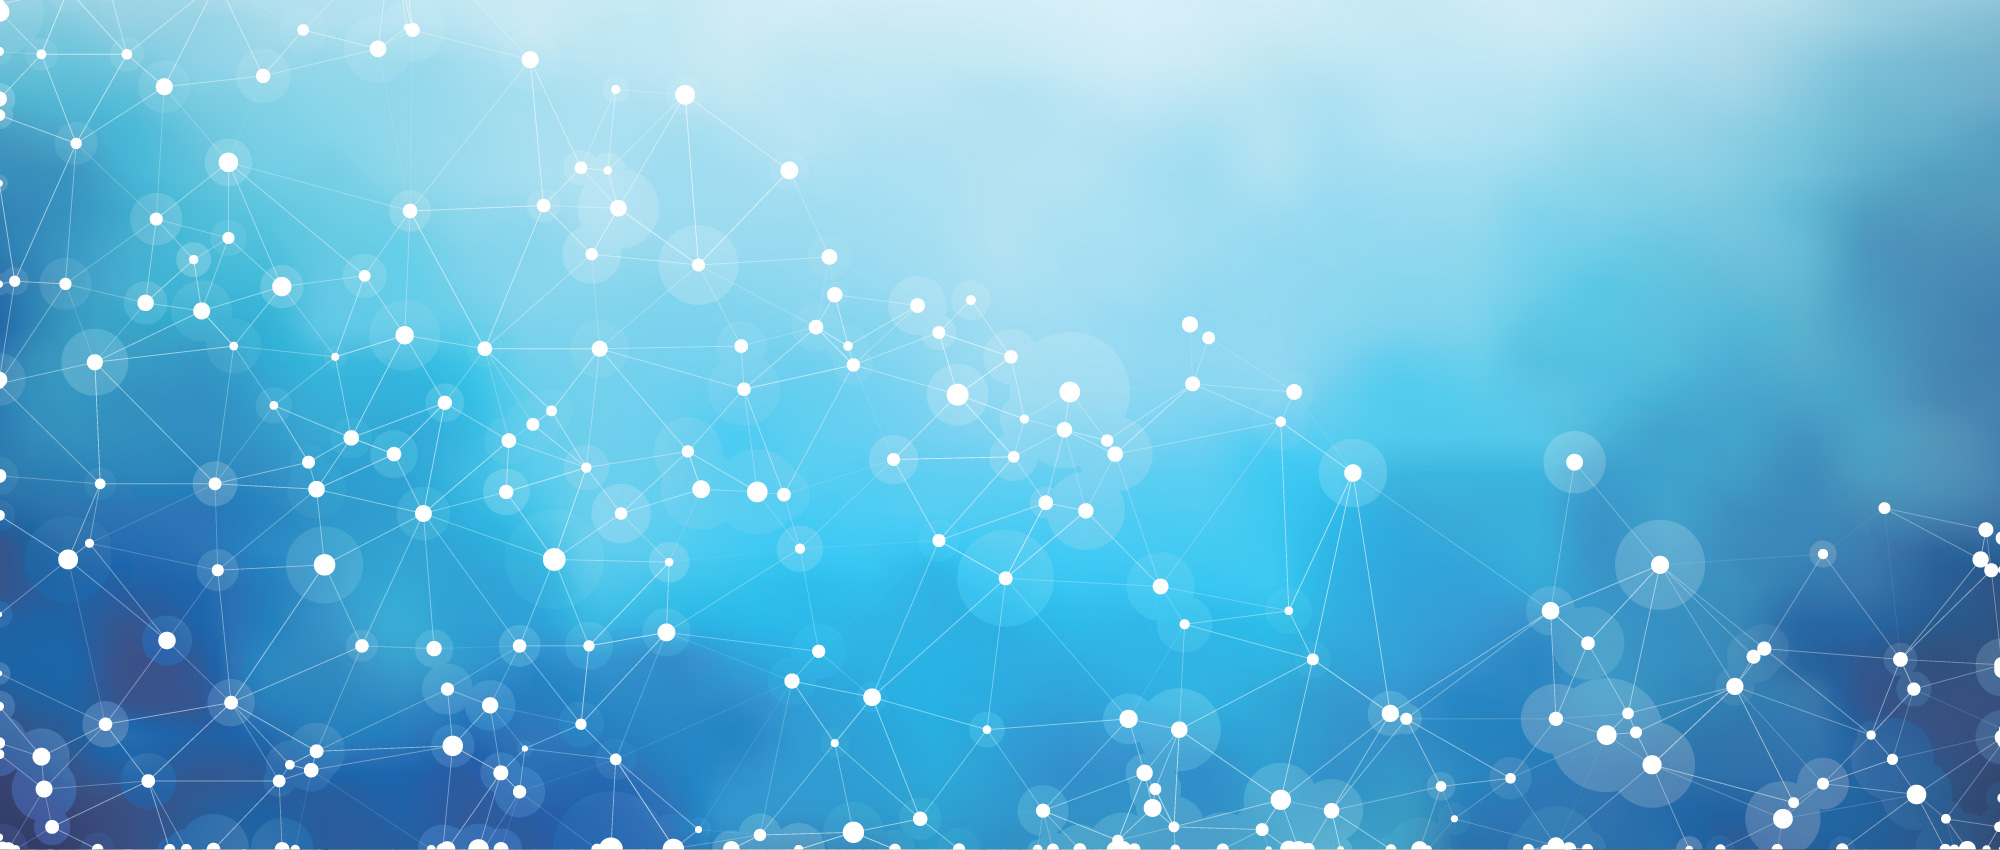 Blue digital decorative background with interconnected white dots